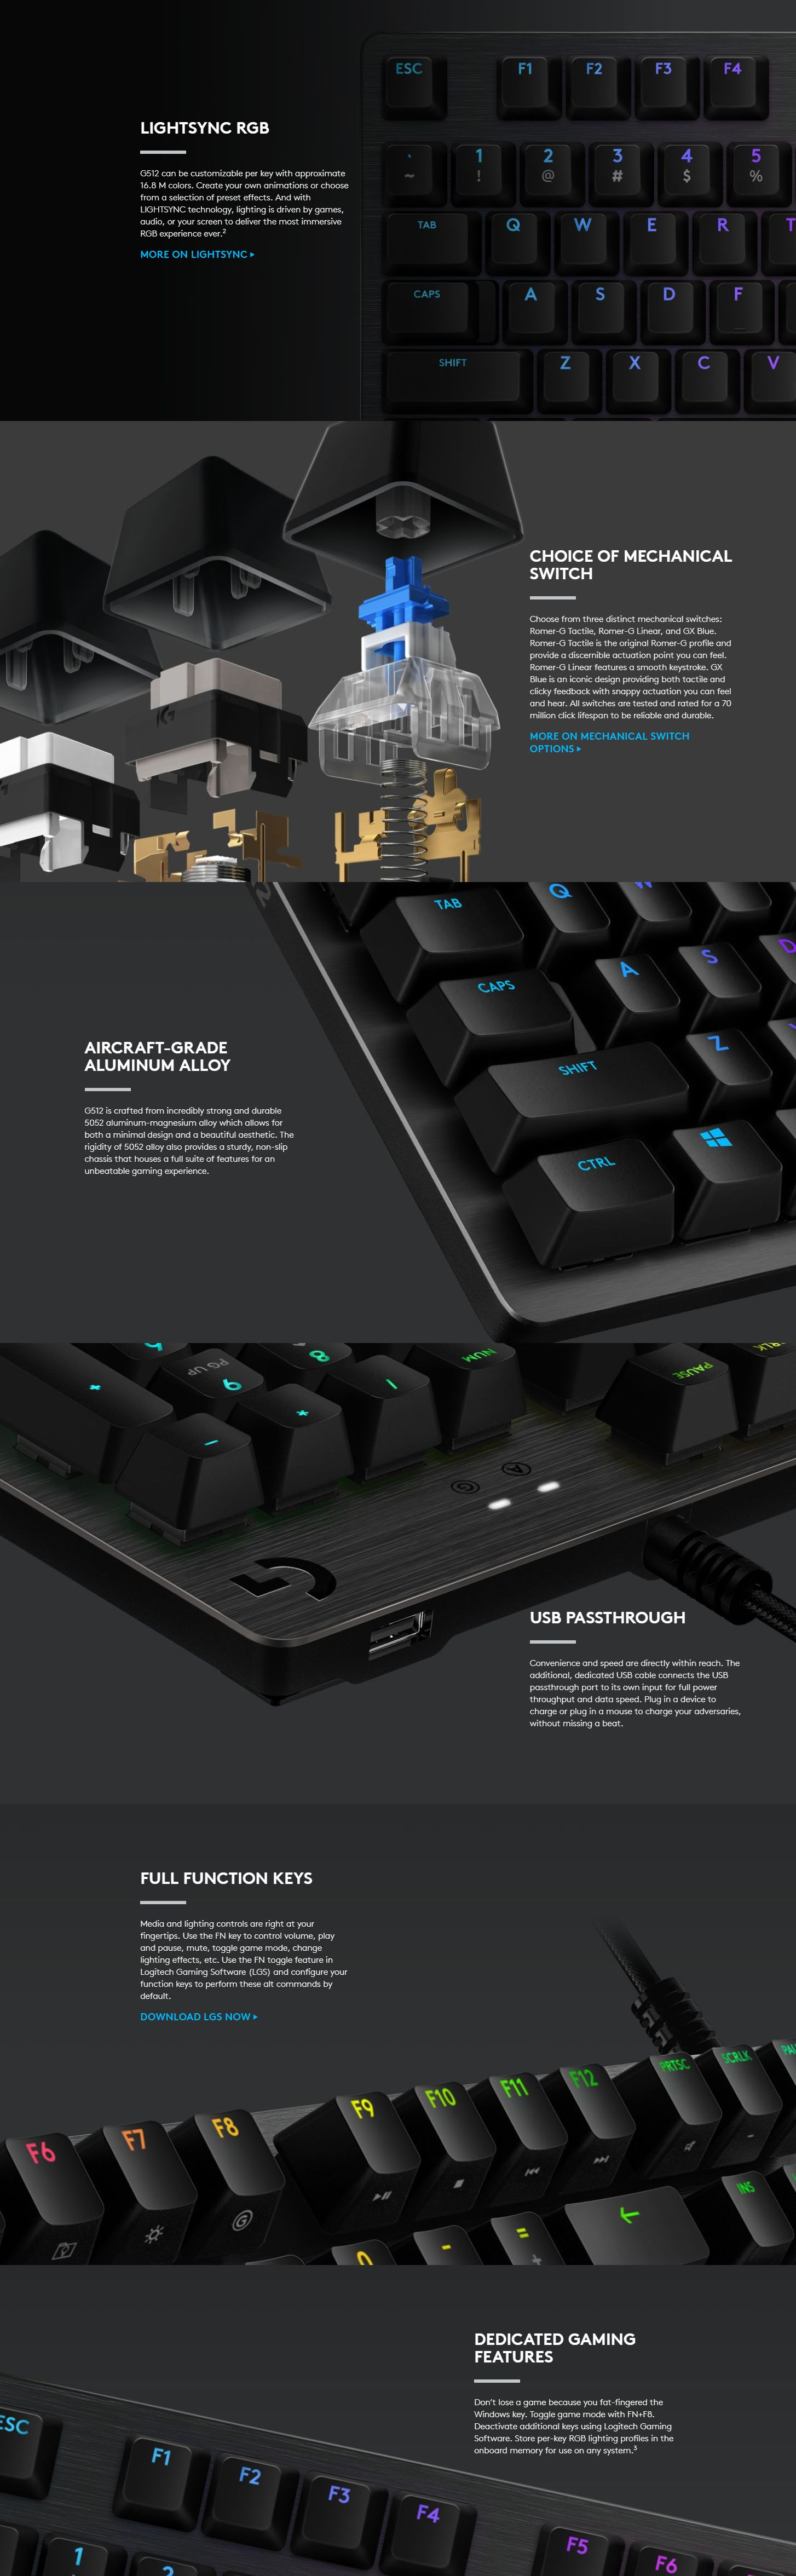 Logitech G512 Carbon RGB Mechanical Gaming Keyboard - Linear Switch